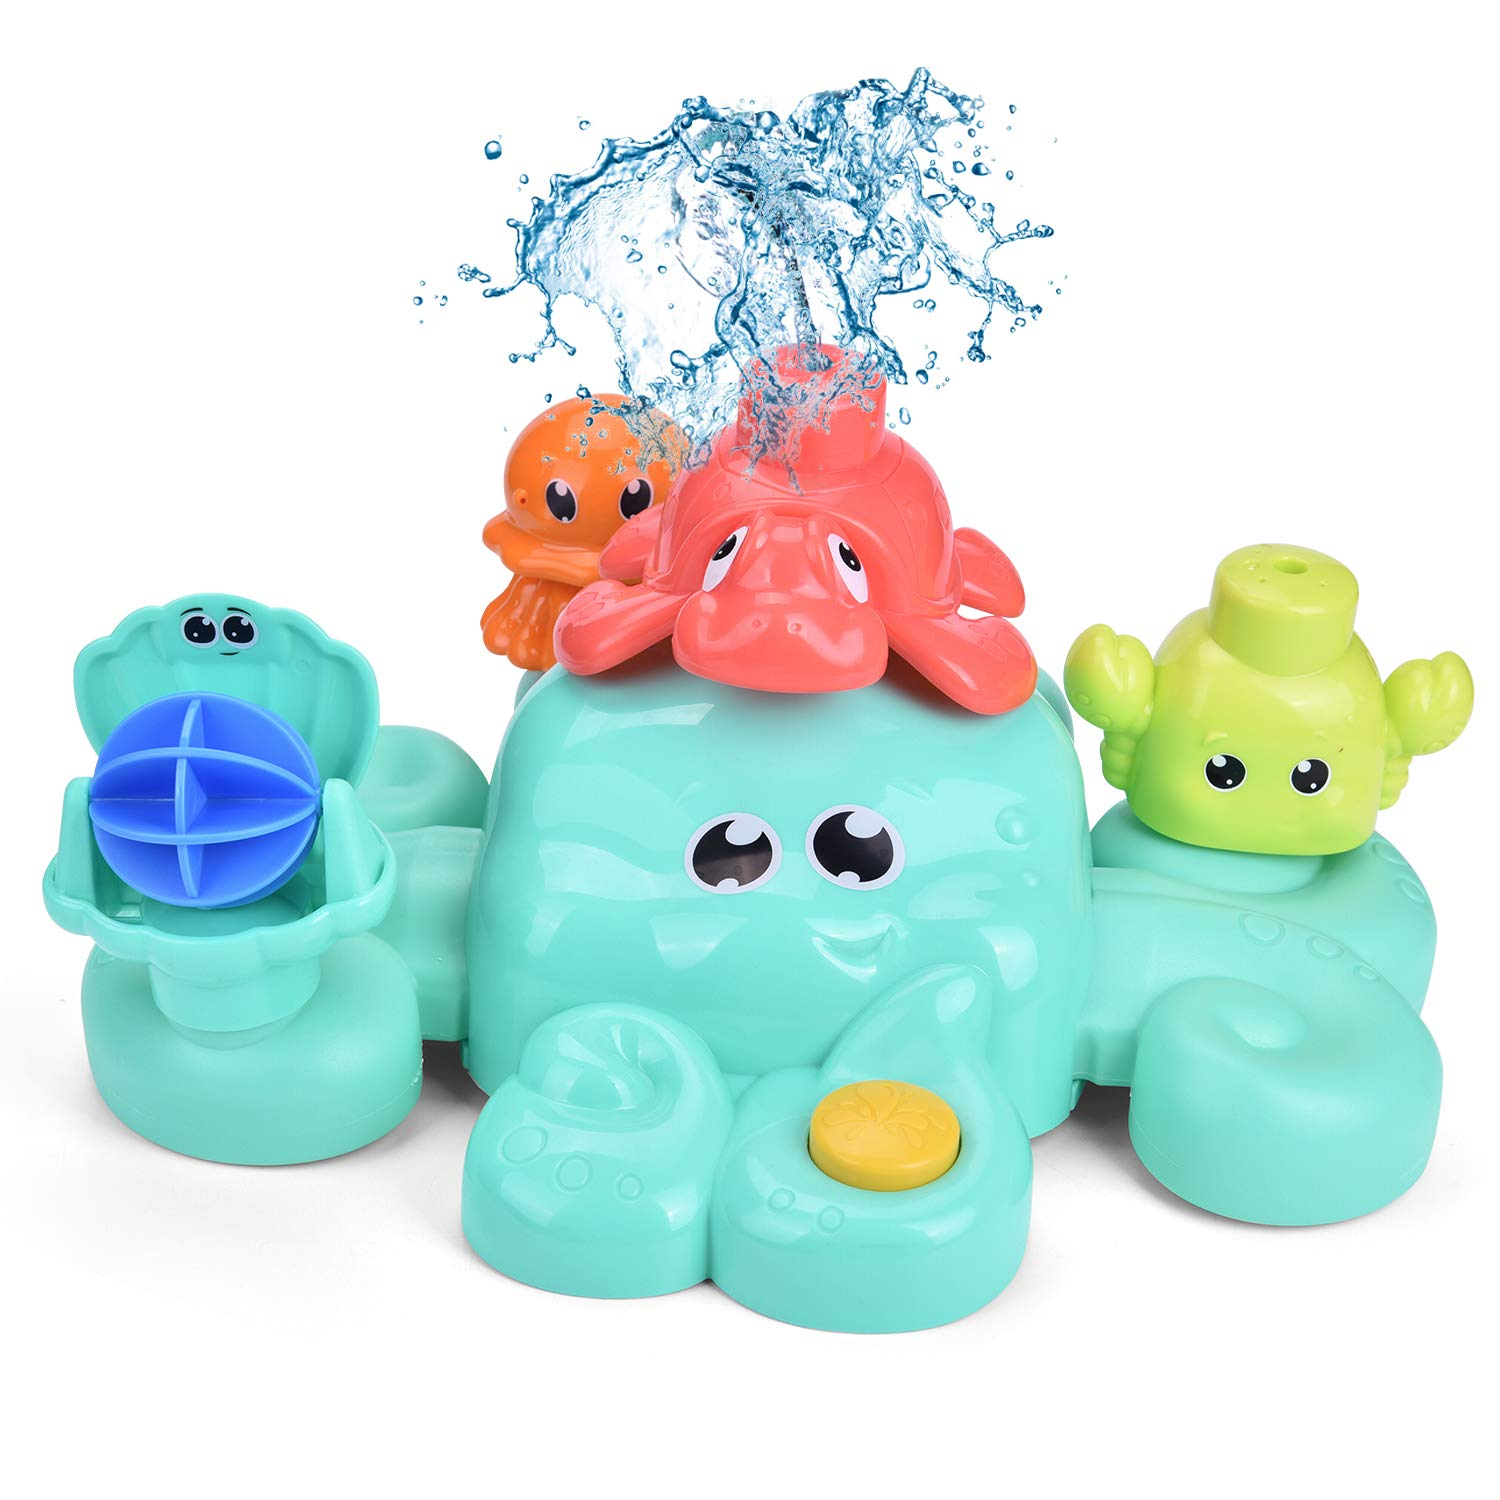 FUN LITTLE TOYS Bath Toys for Toddlers, 5 PCs Bath Tub Toys Set, Spray Water Toys for Kids, Best Gifts for Boys & Girls